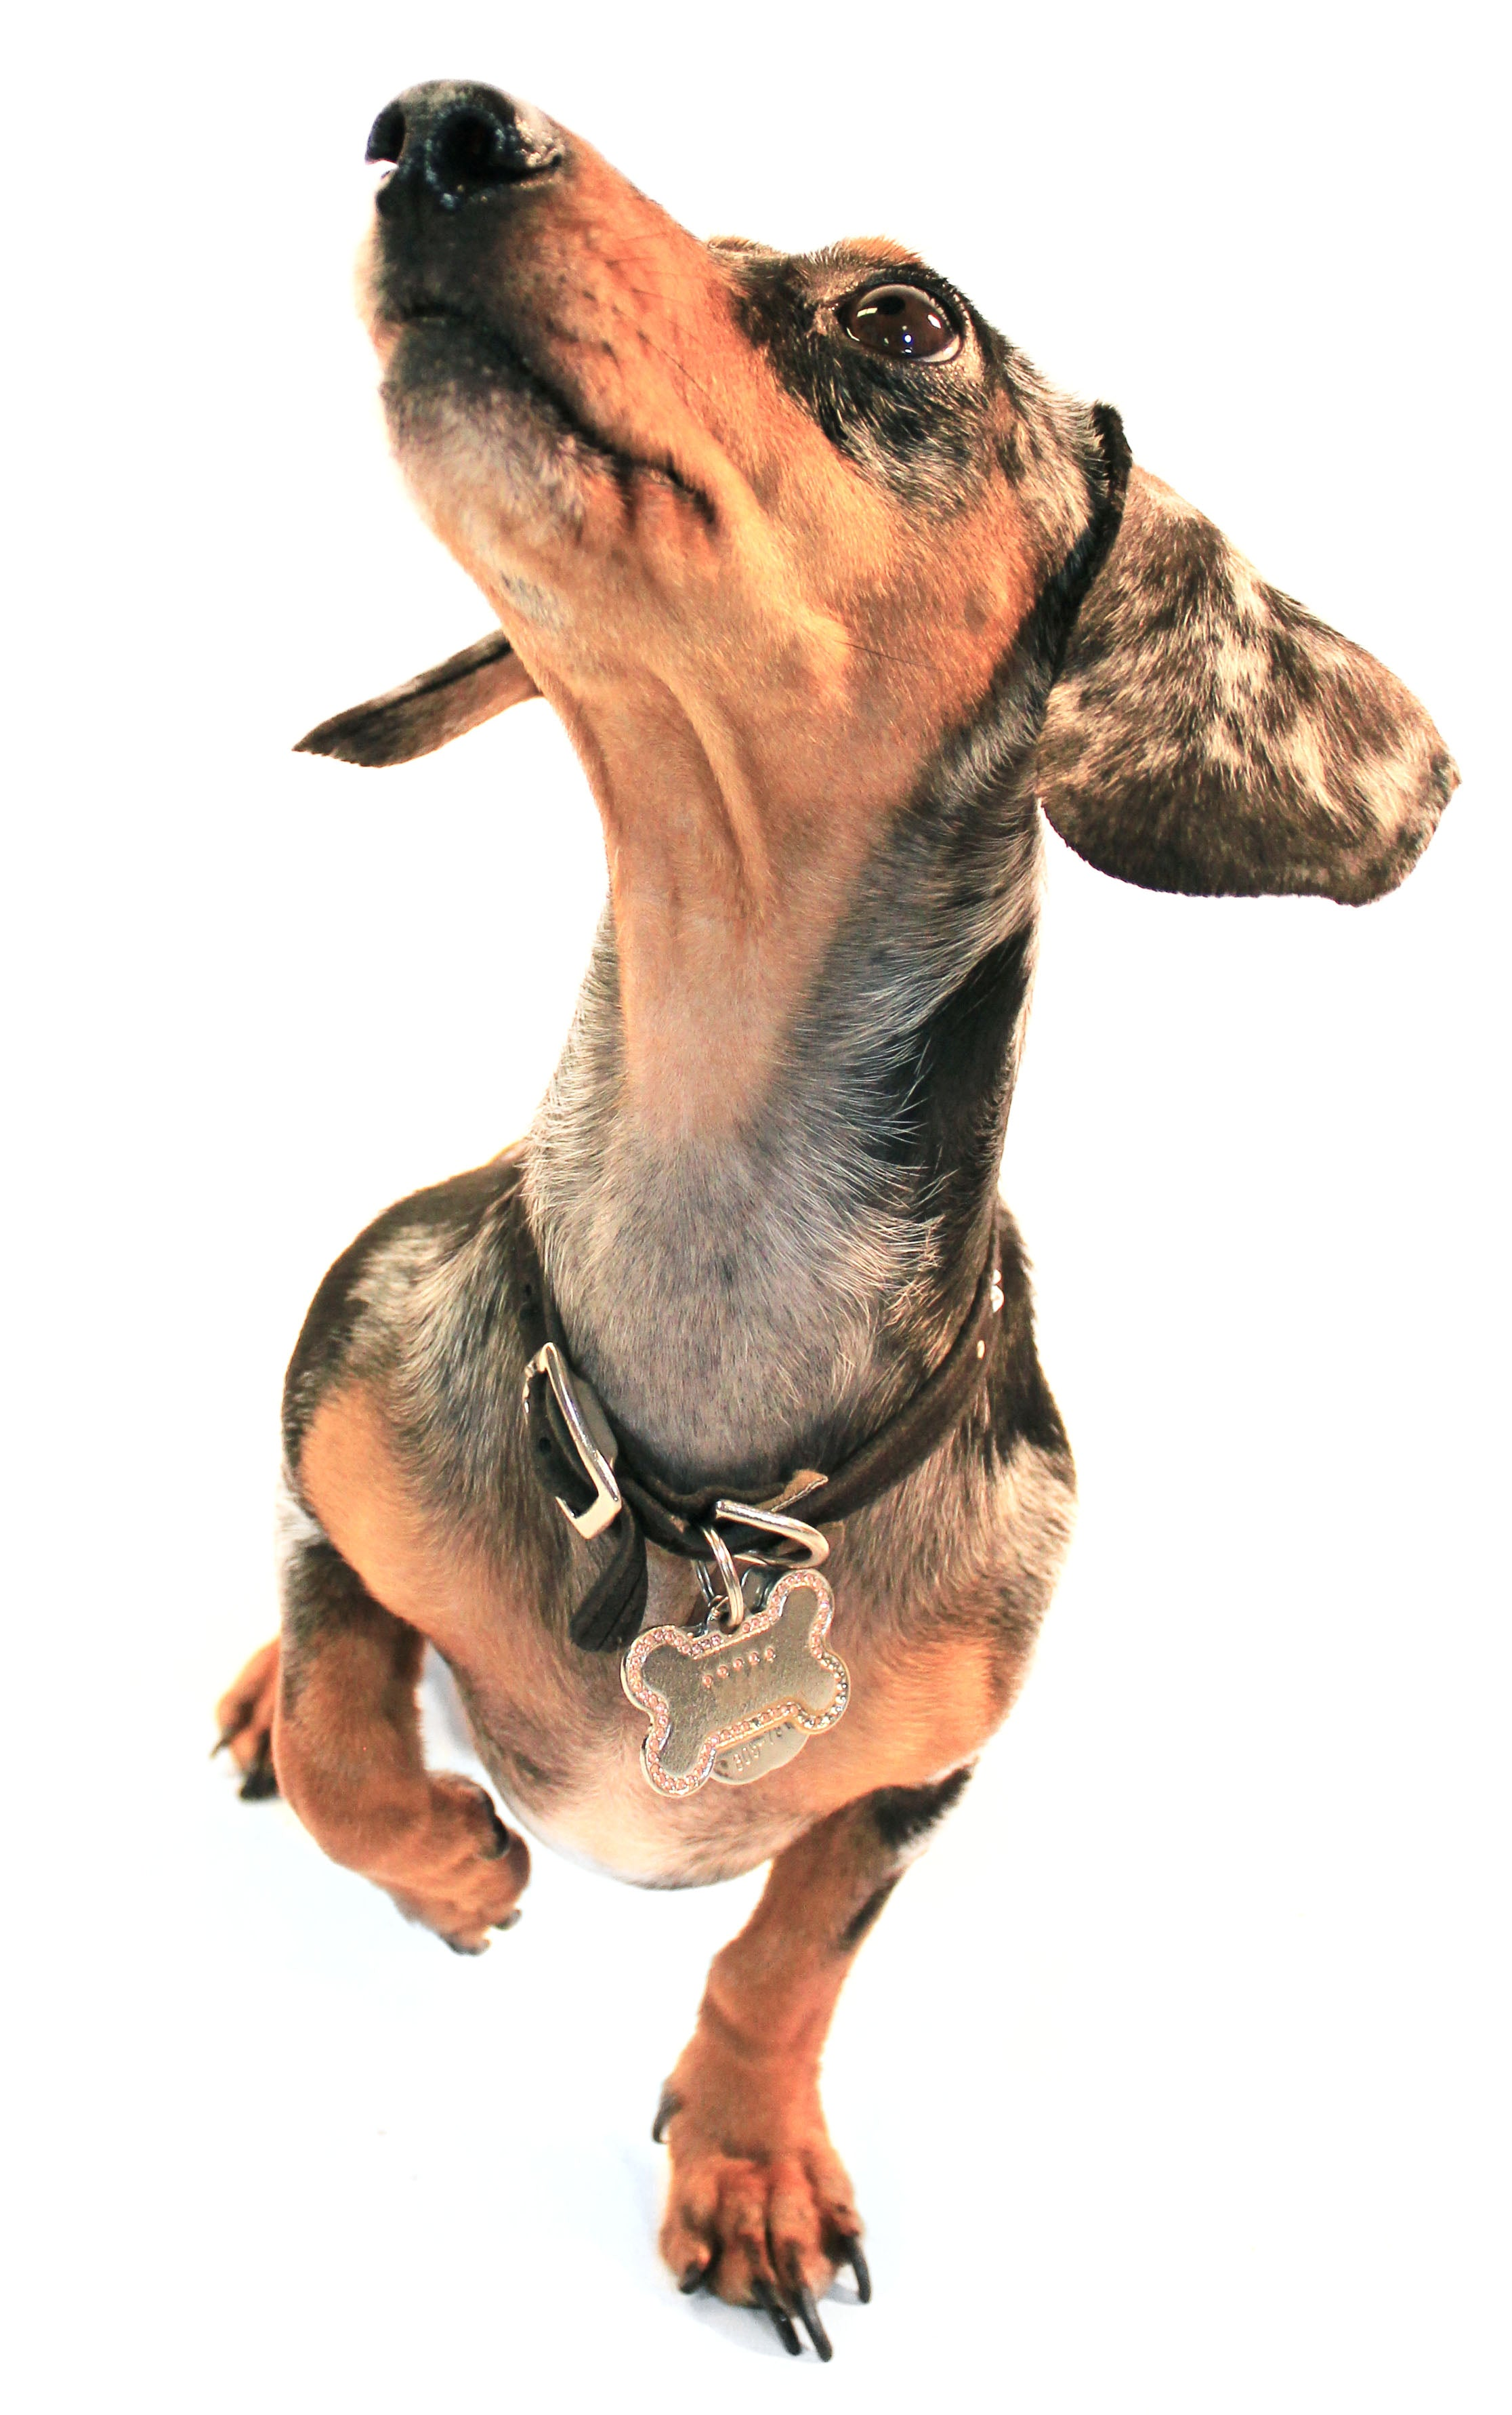 A small dachshund with spotted brown fur lifting a paw up into the air as he gets ready to play.